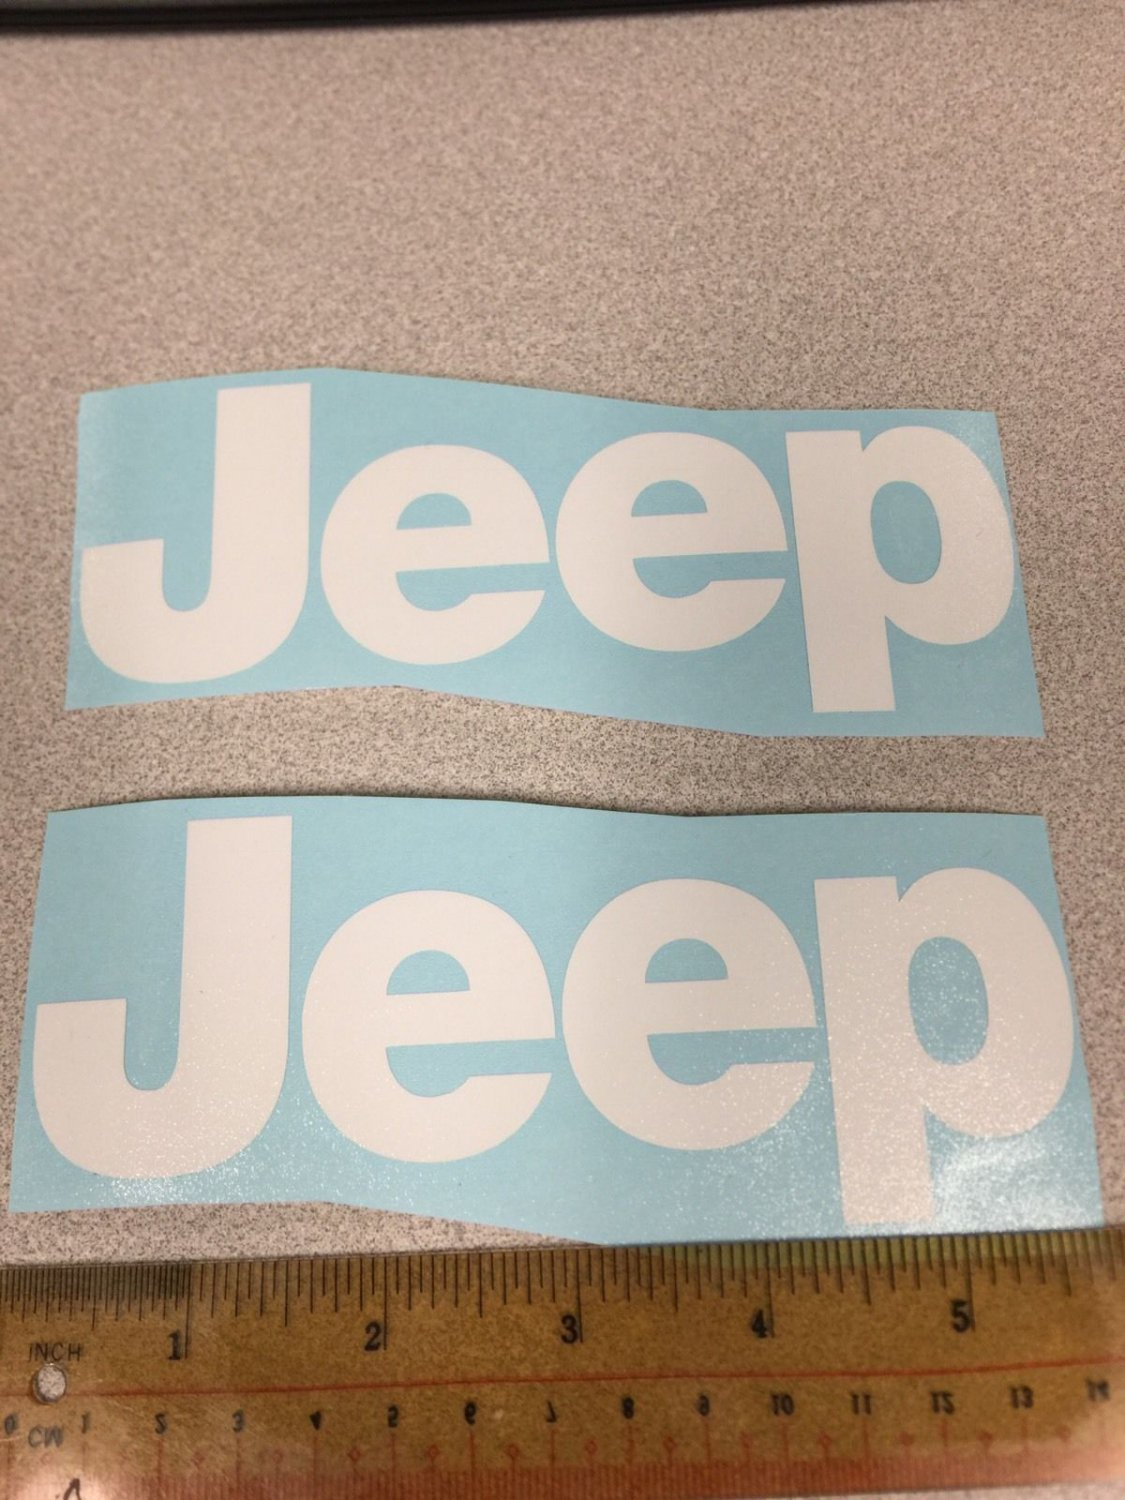 JEEP WRANGLER CJ YJ replacment fender vinyl Decal sticker 1 Set White Decal